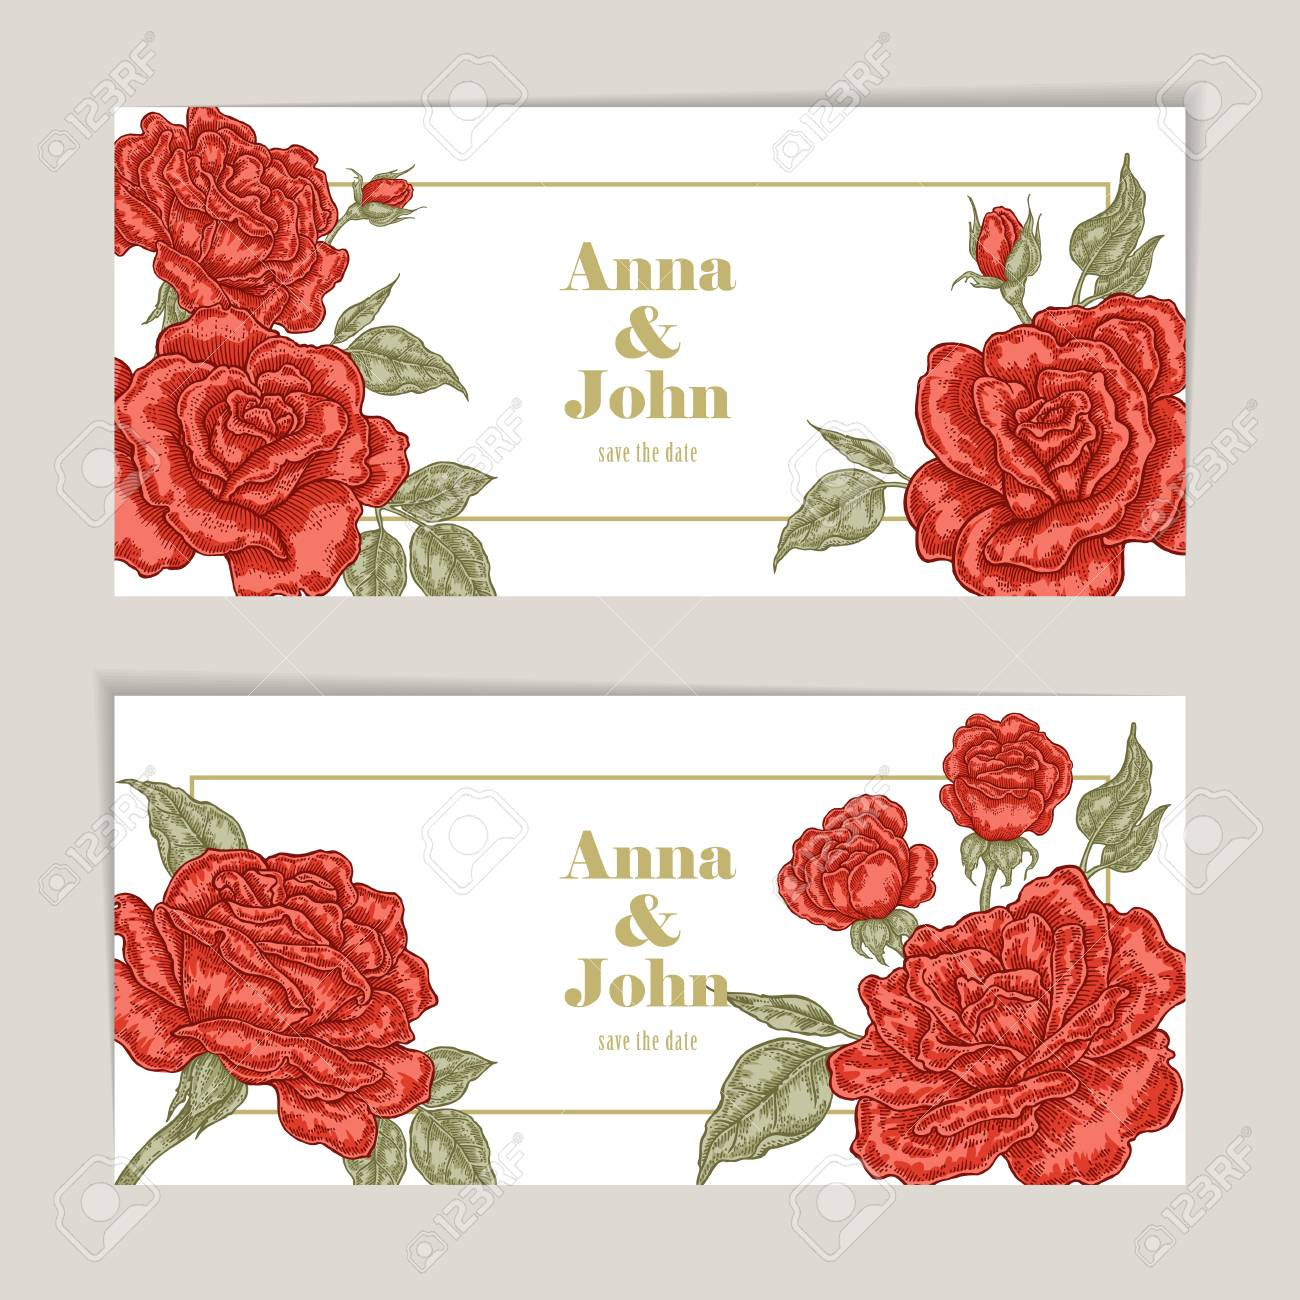 Floral Wedding Invitation Card Sketch. Vector Illustration Vintage ...